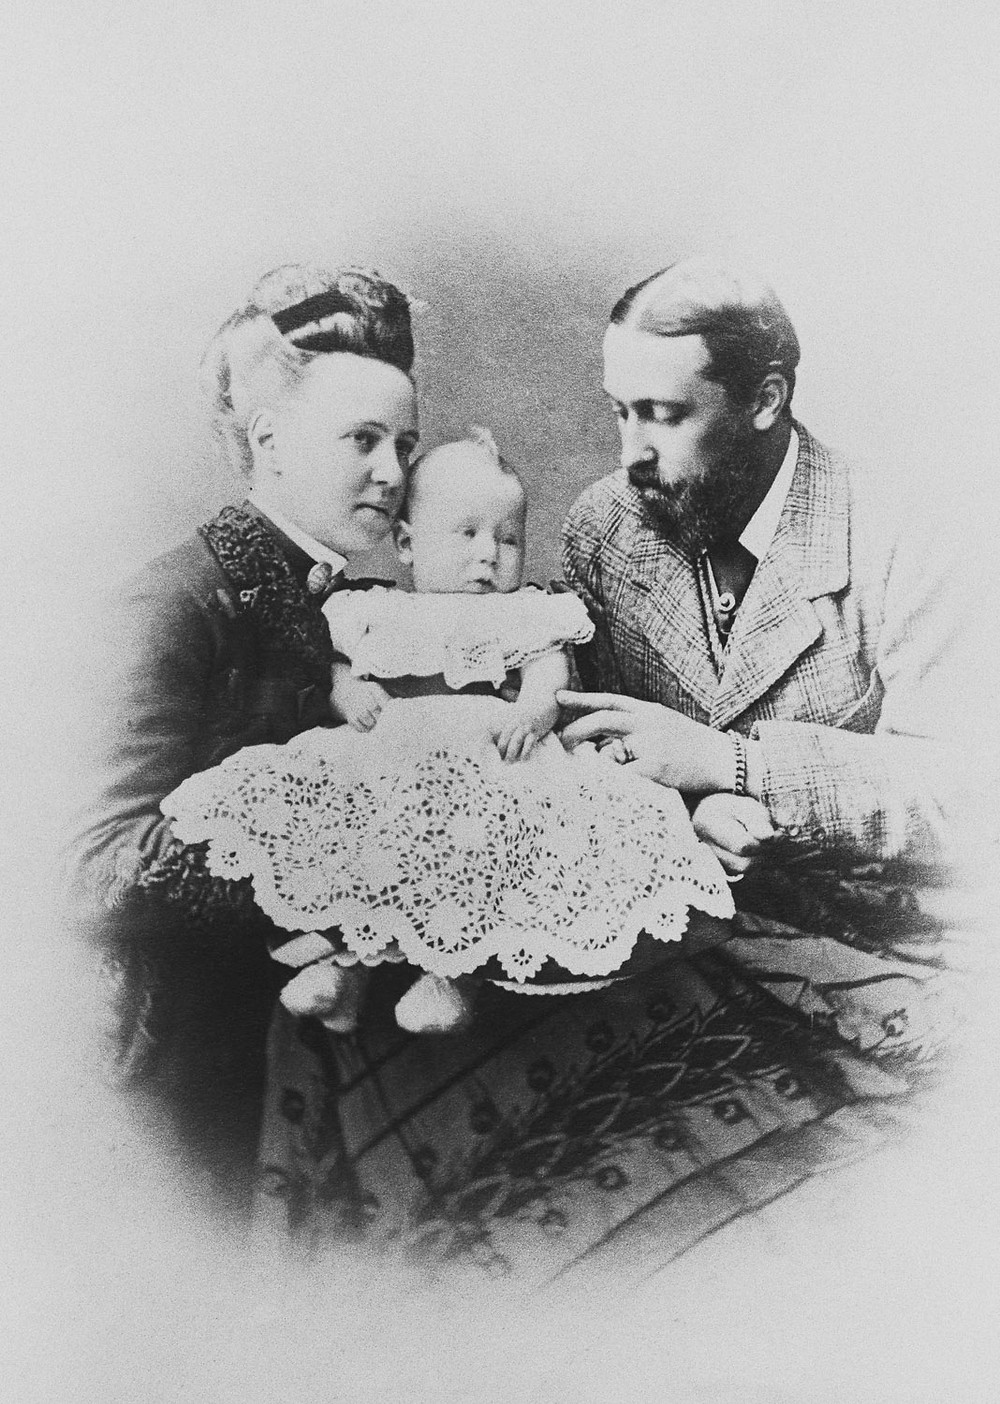 The Duke & Duchess of Edinburgh with their son, Prince Alfred, 1875. Royal Collection Trust/(c) Her Majesty Queen Elizabeth II 2018